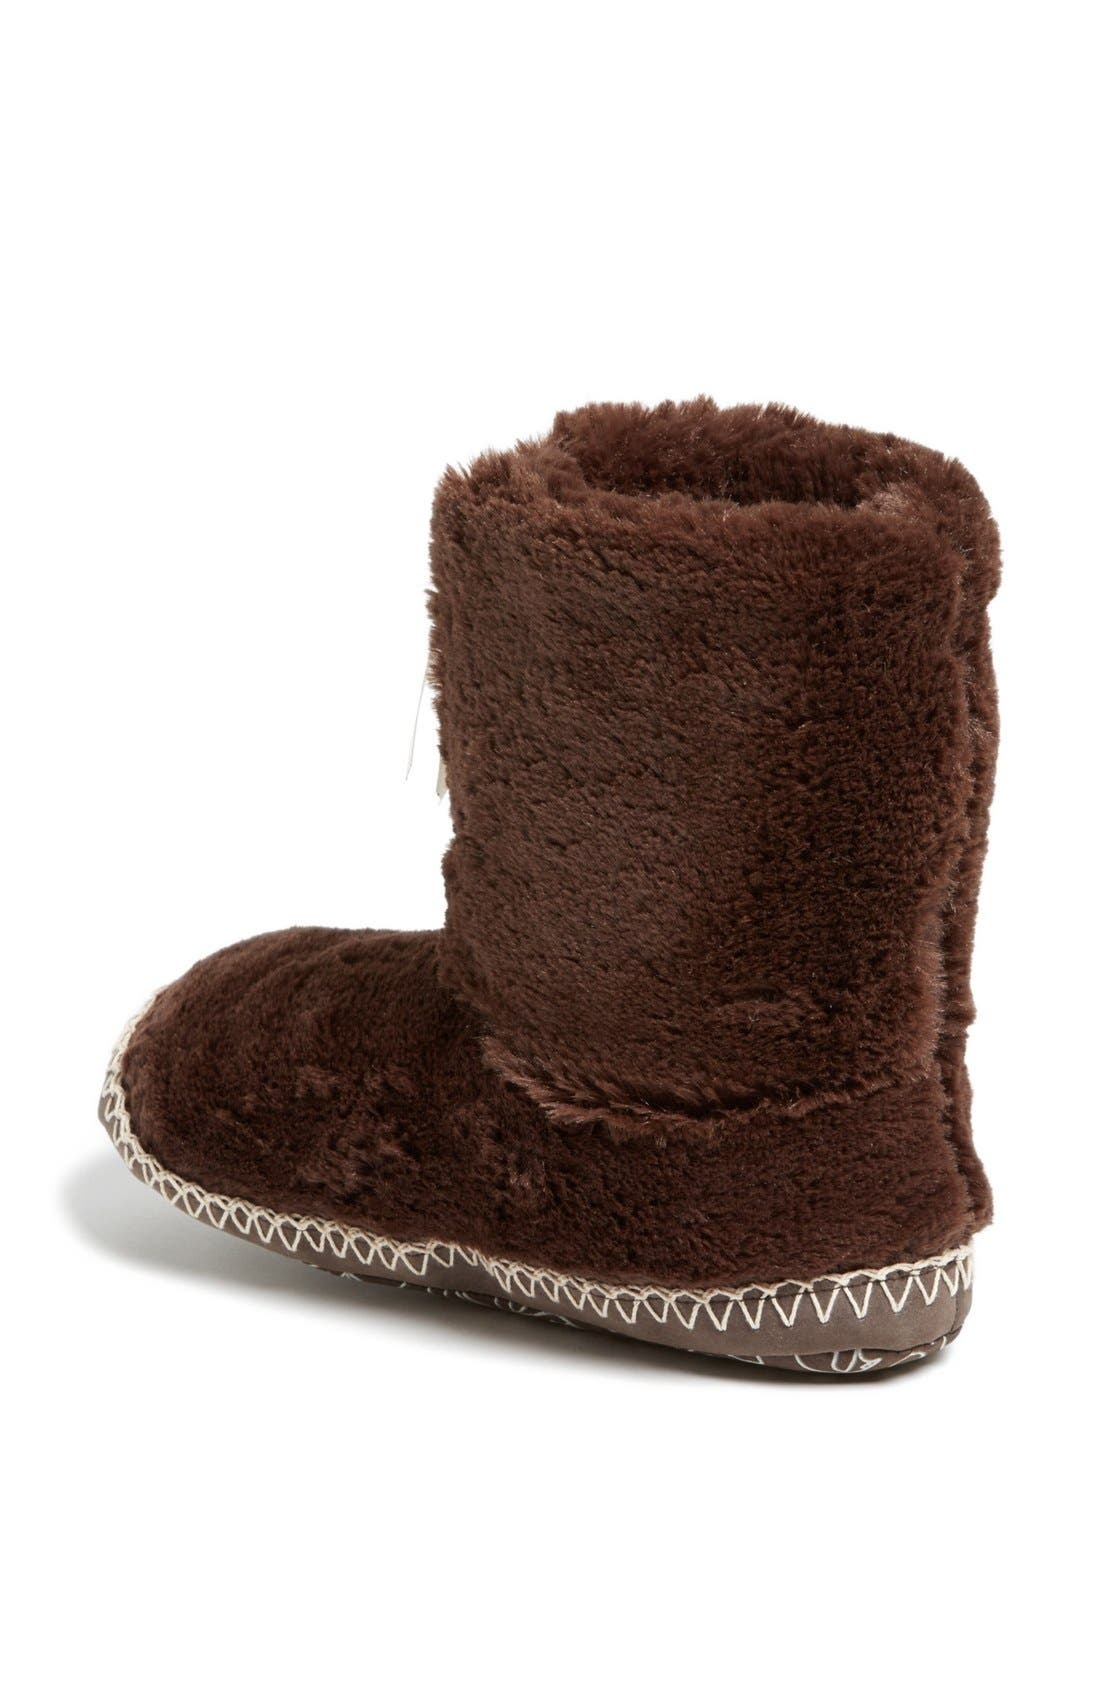 Alternate Image 2  - Bedroom Athletics 'Marilyn' Faux Fur Bootie Slipper